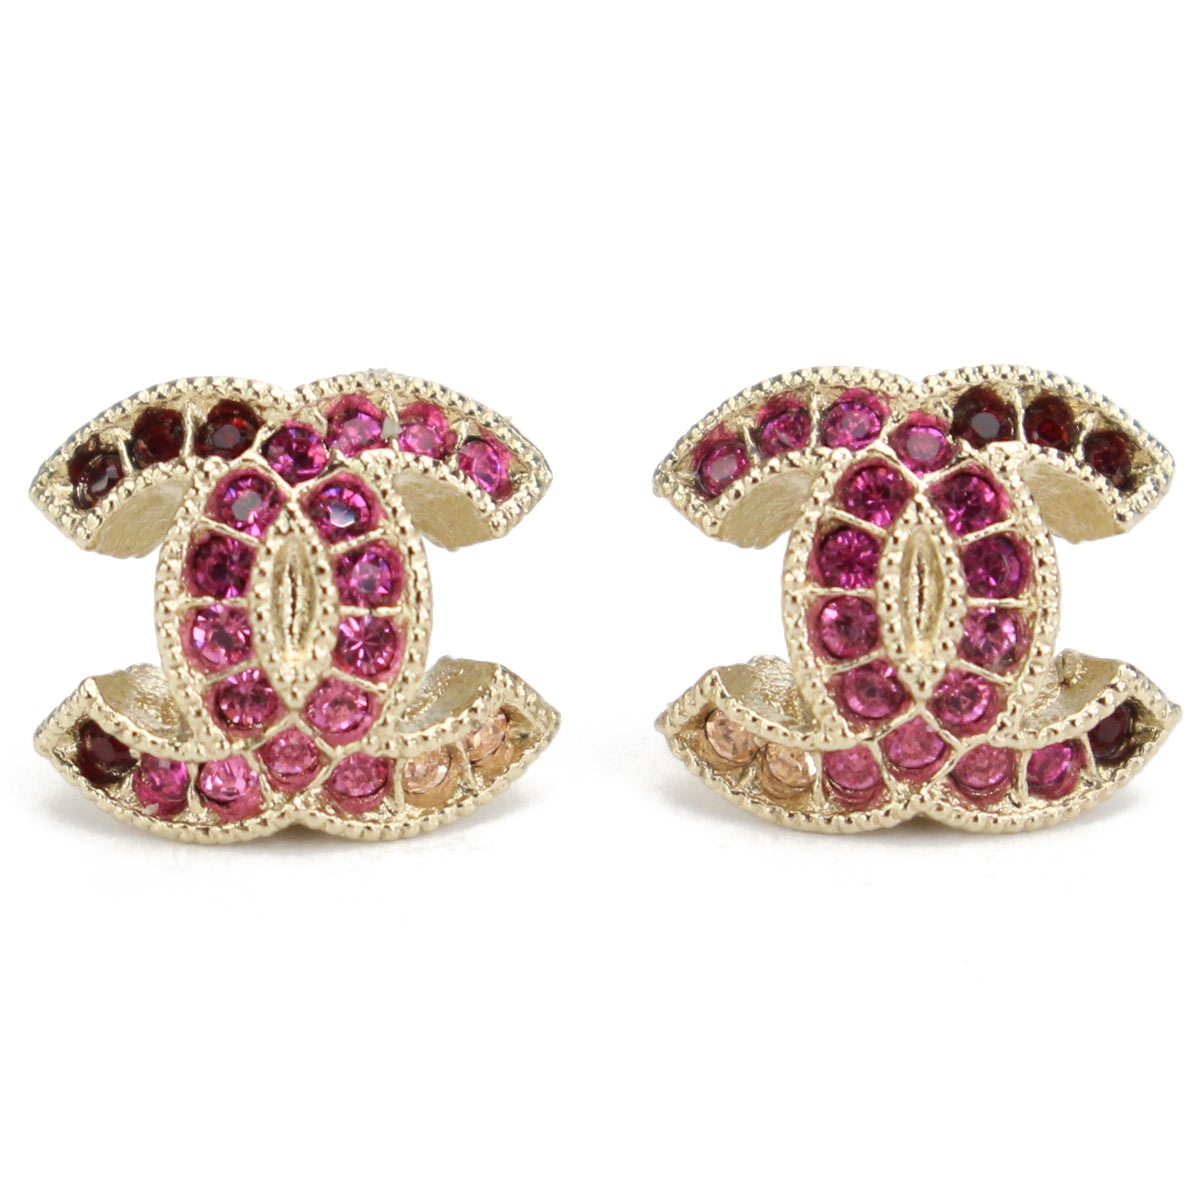 Hit The Total Brand Whole Chanel Rhinestone Here Mark Pierced Earrings A99179 Gold Pink Zirconia Multi System Rakuten Global